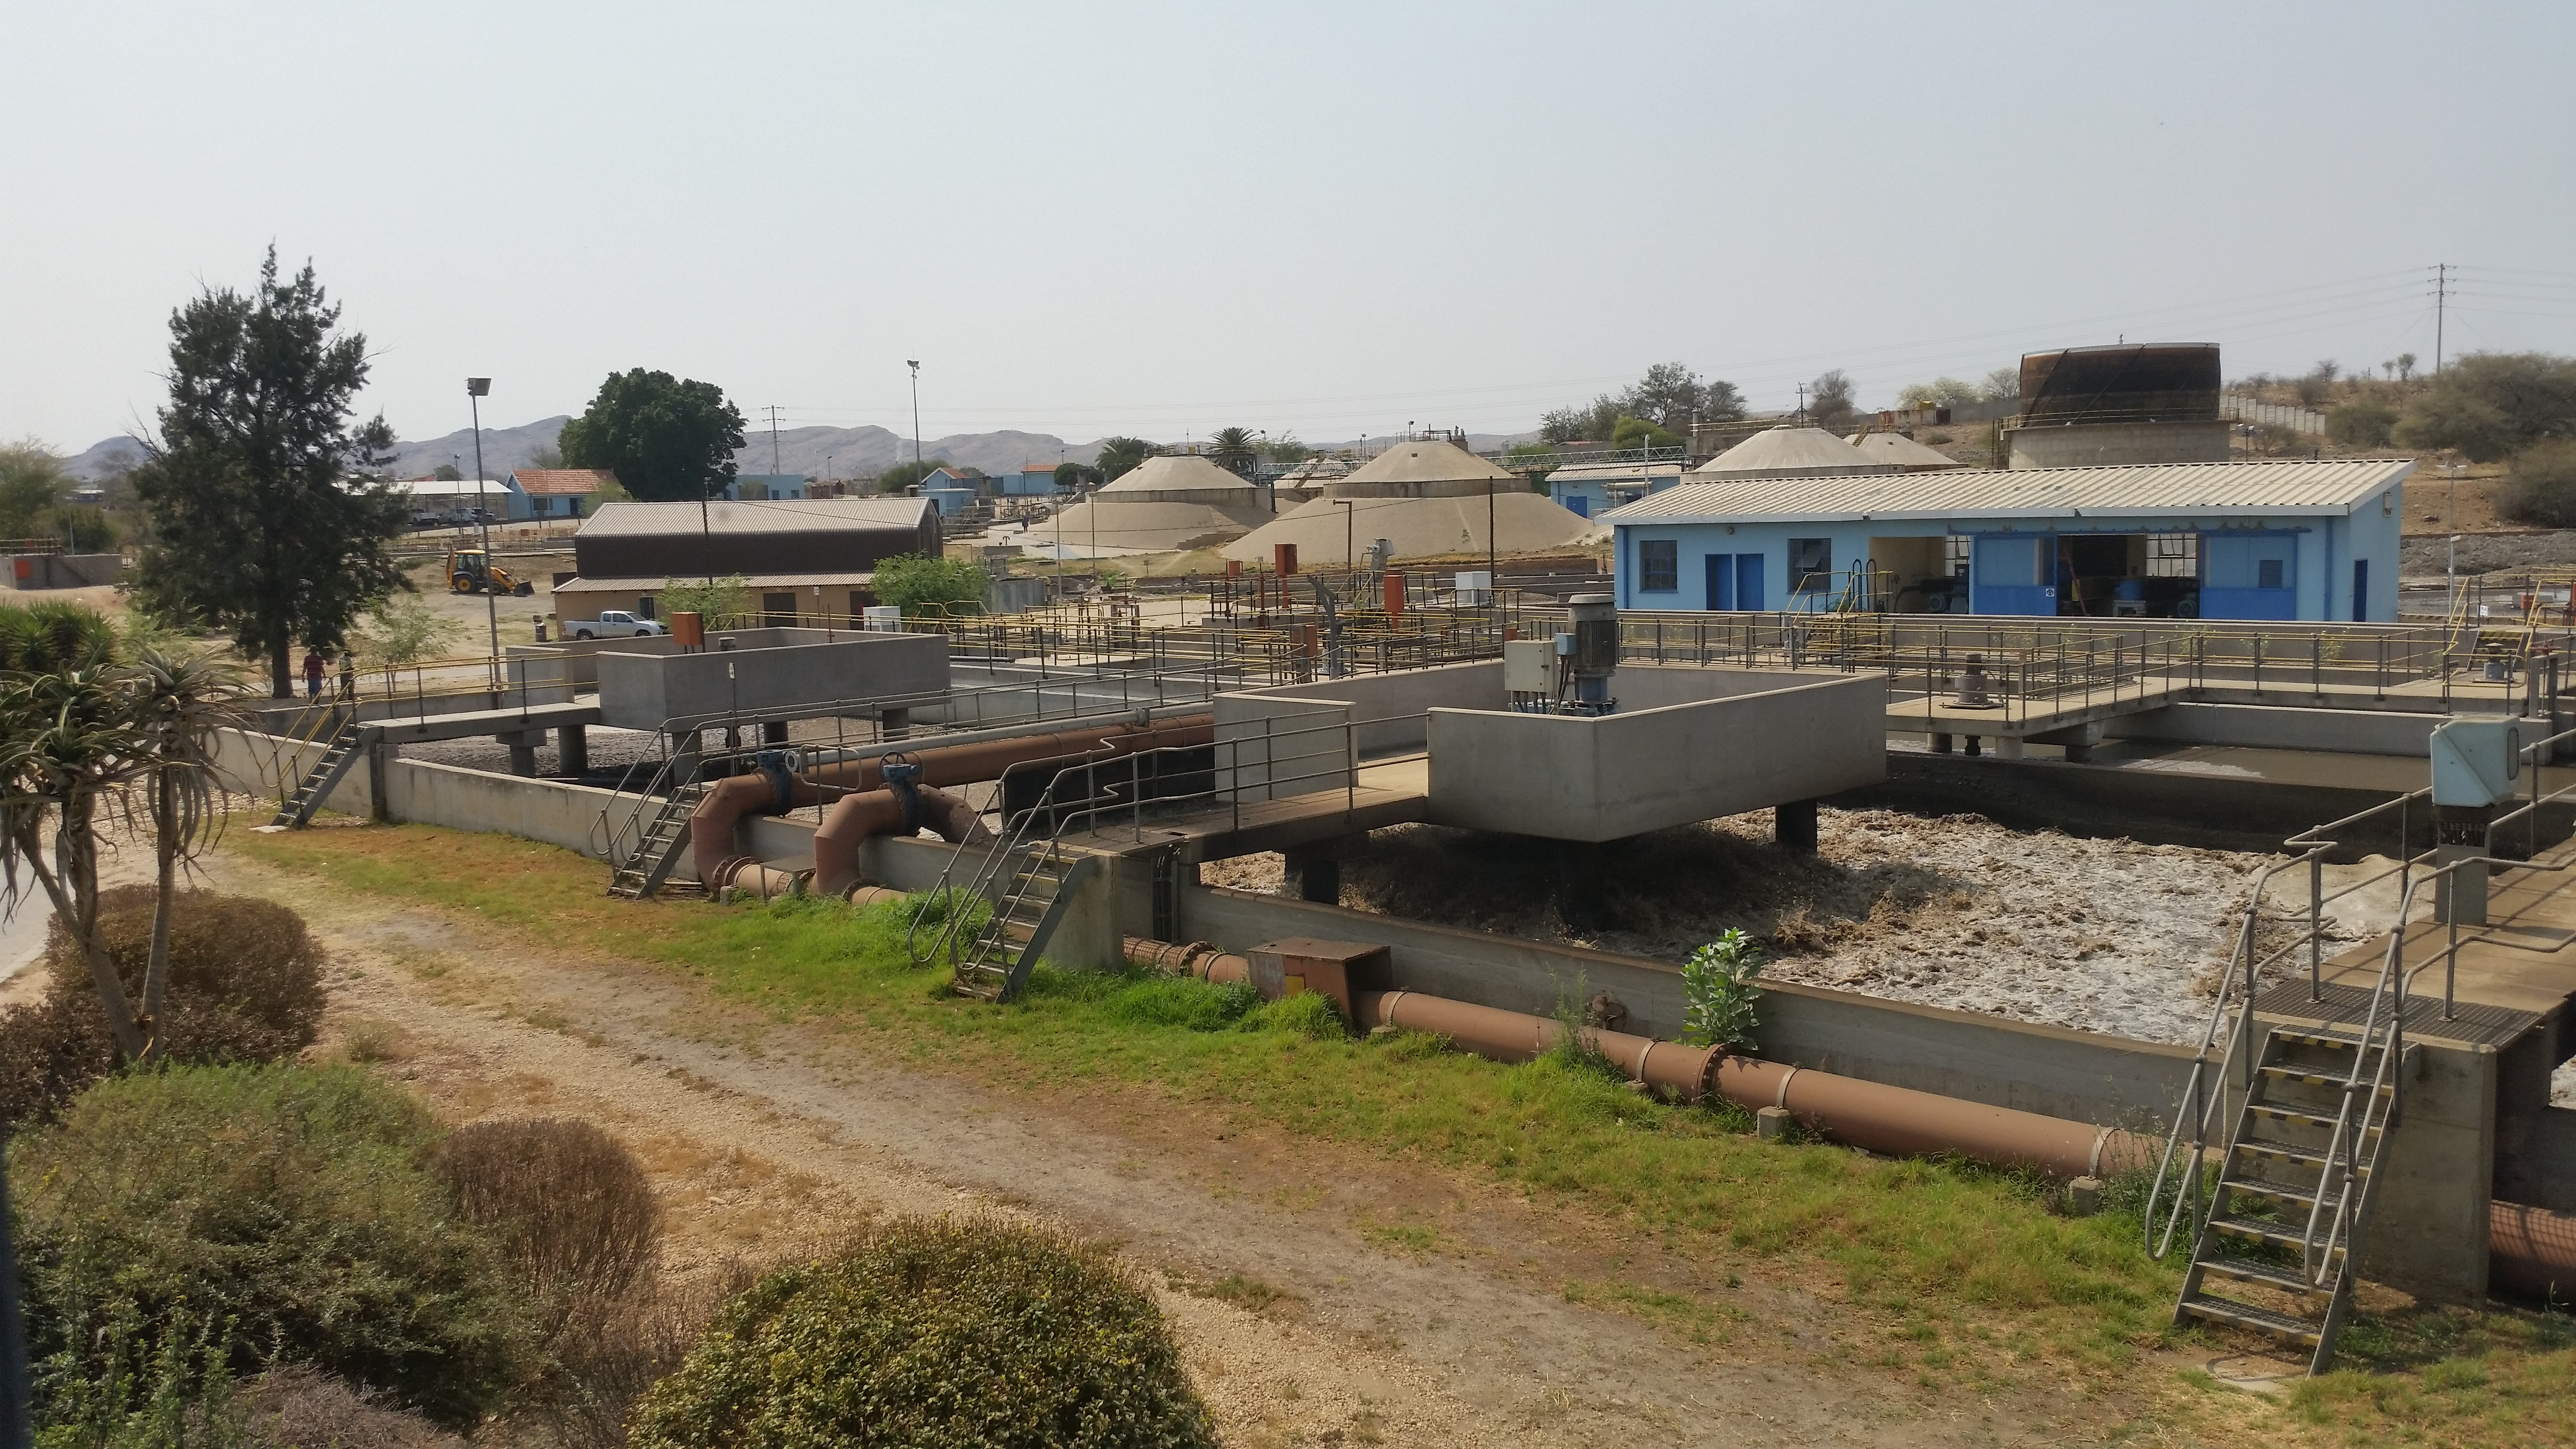 The recyling process begins with a conventional sewage treatment system. But at the point where processed sewage would normally be discharged into a waterway, the Goreangab plant sends it through additional steps that purify it to drinking water standards